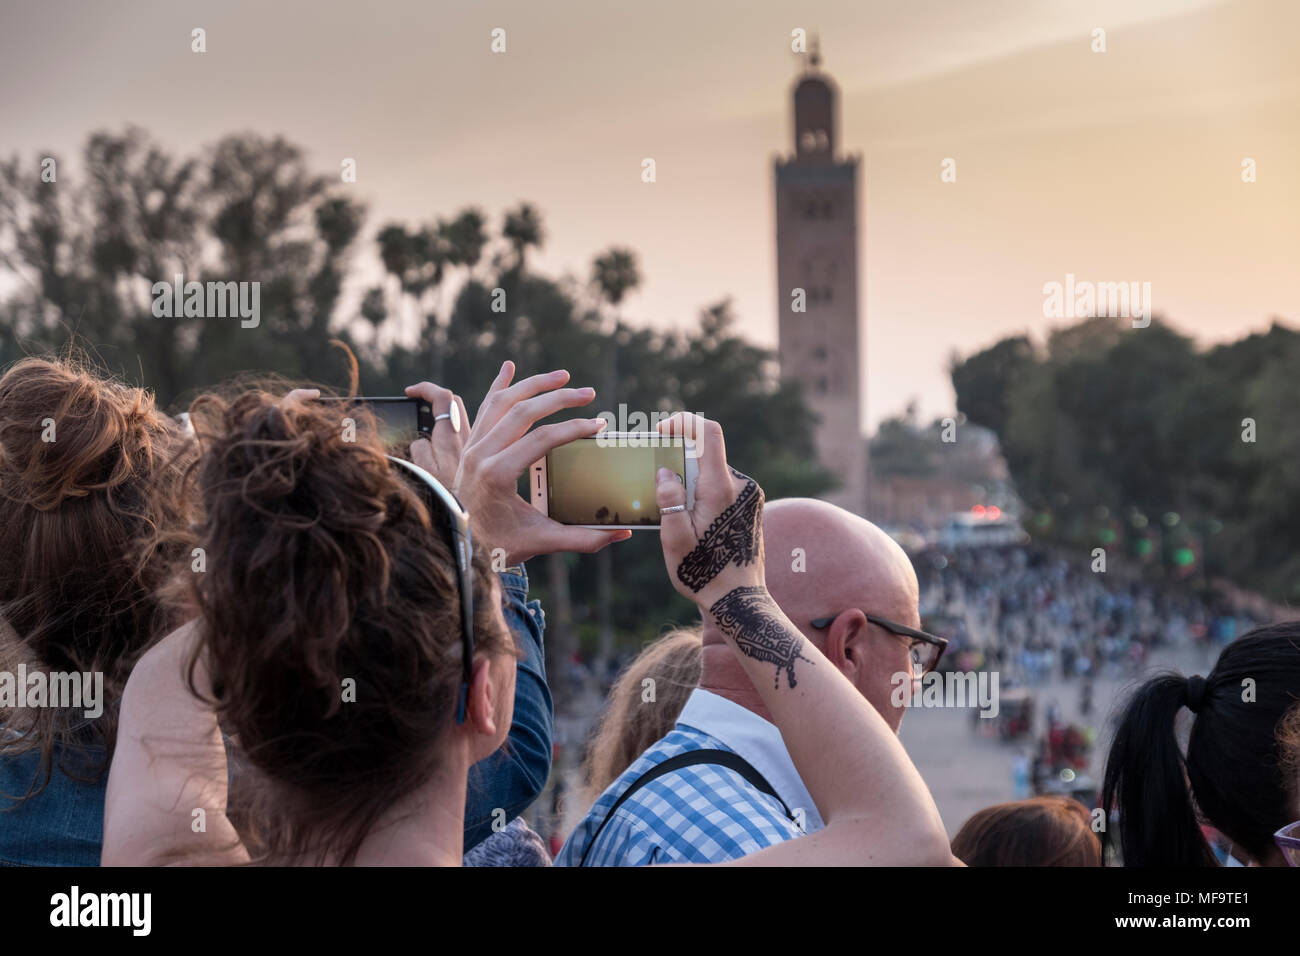 A Woman with Henna Tattoos on ther hands photographs the Koutoubia Mosque on her iphone at sunset, Marrakech, Morocco - Stock Image